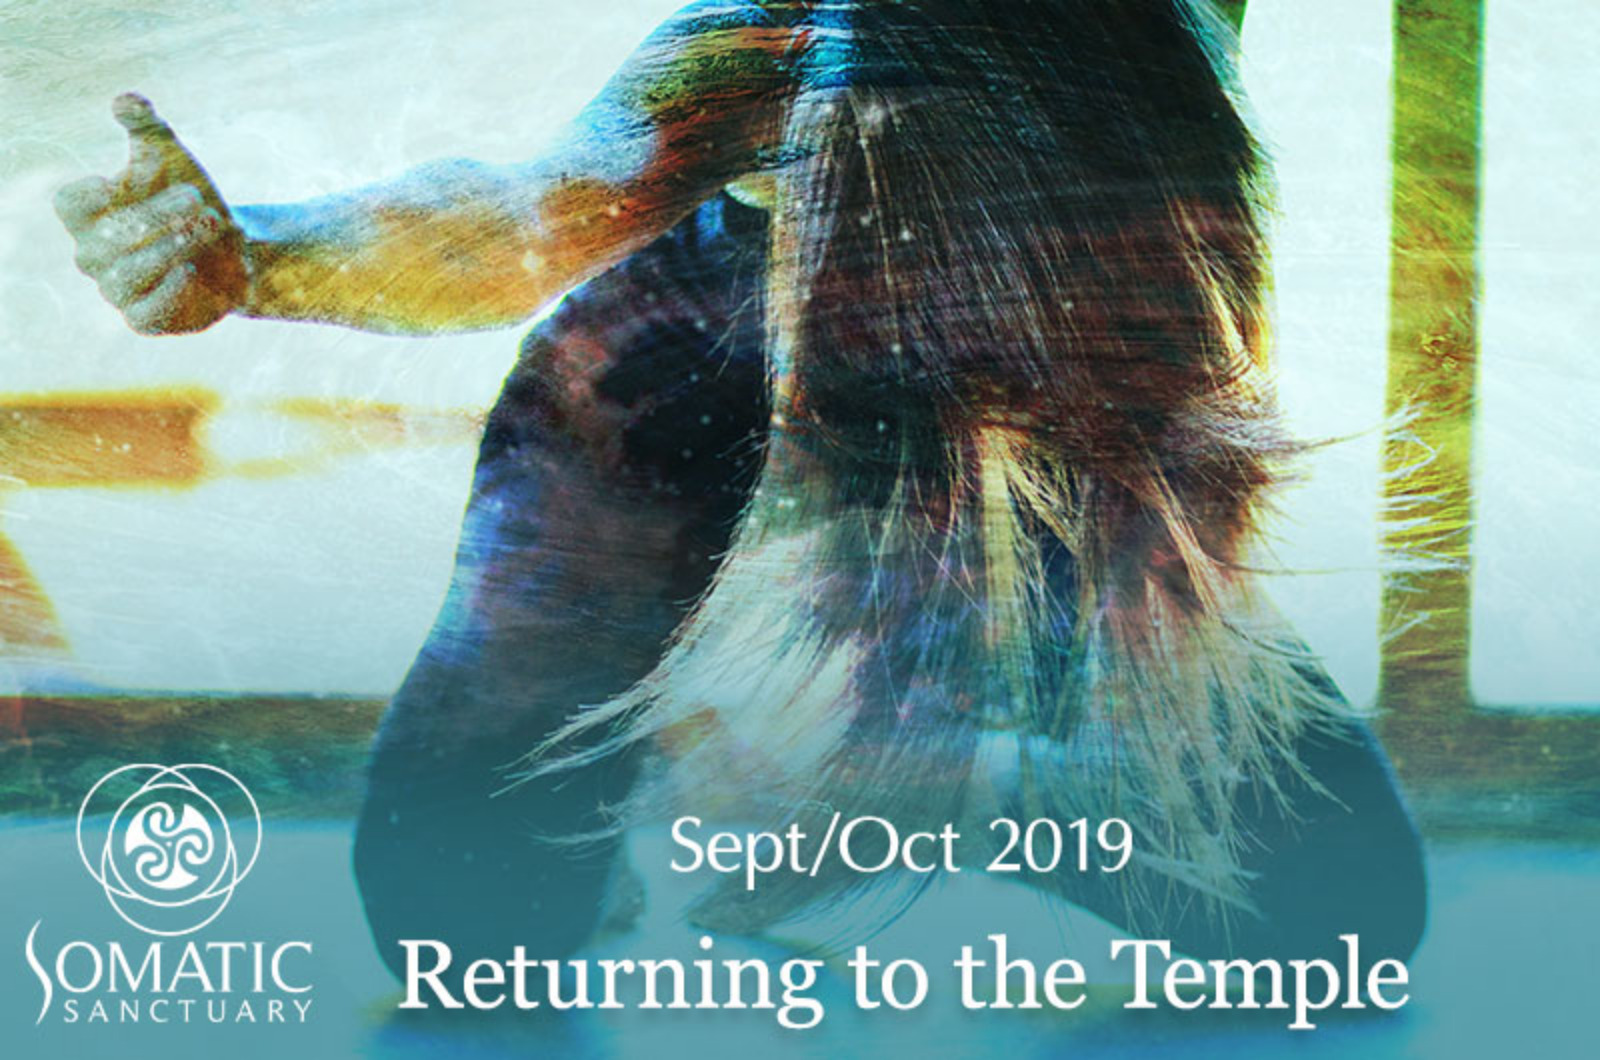 Returning to the Temple: Sep/Oct 2019